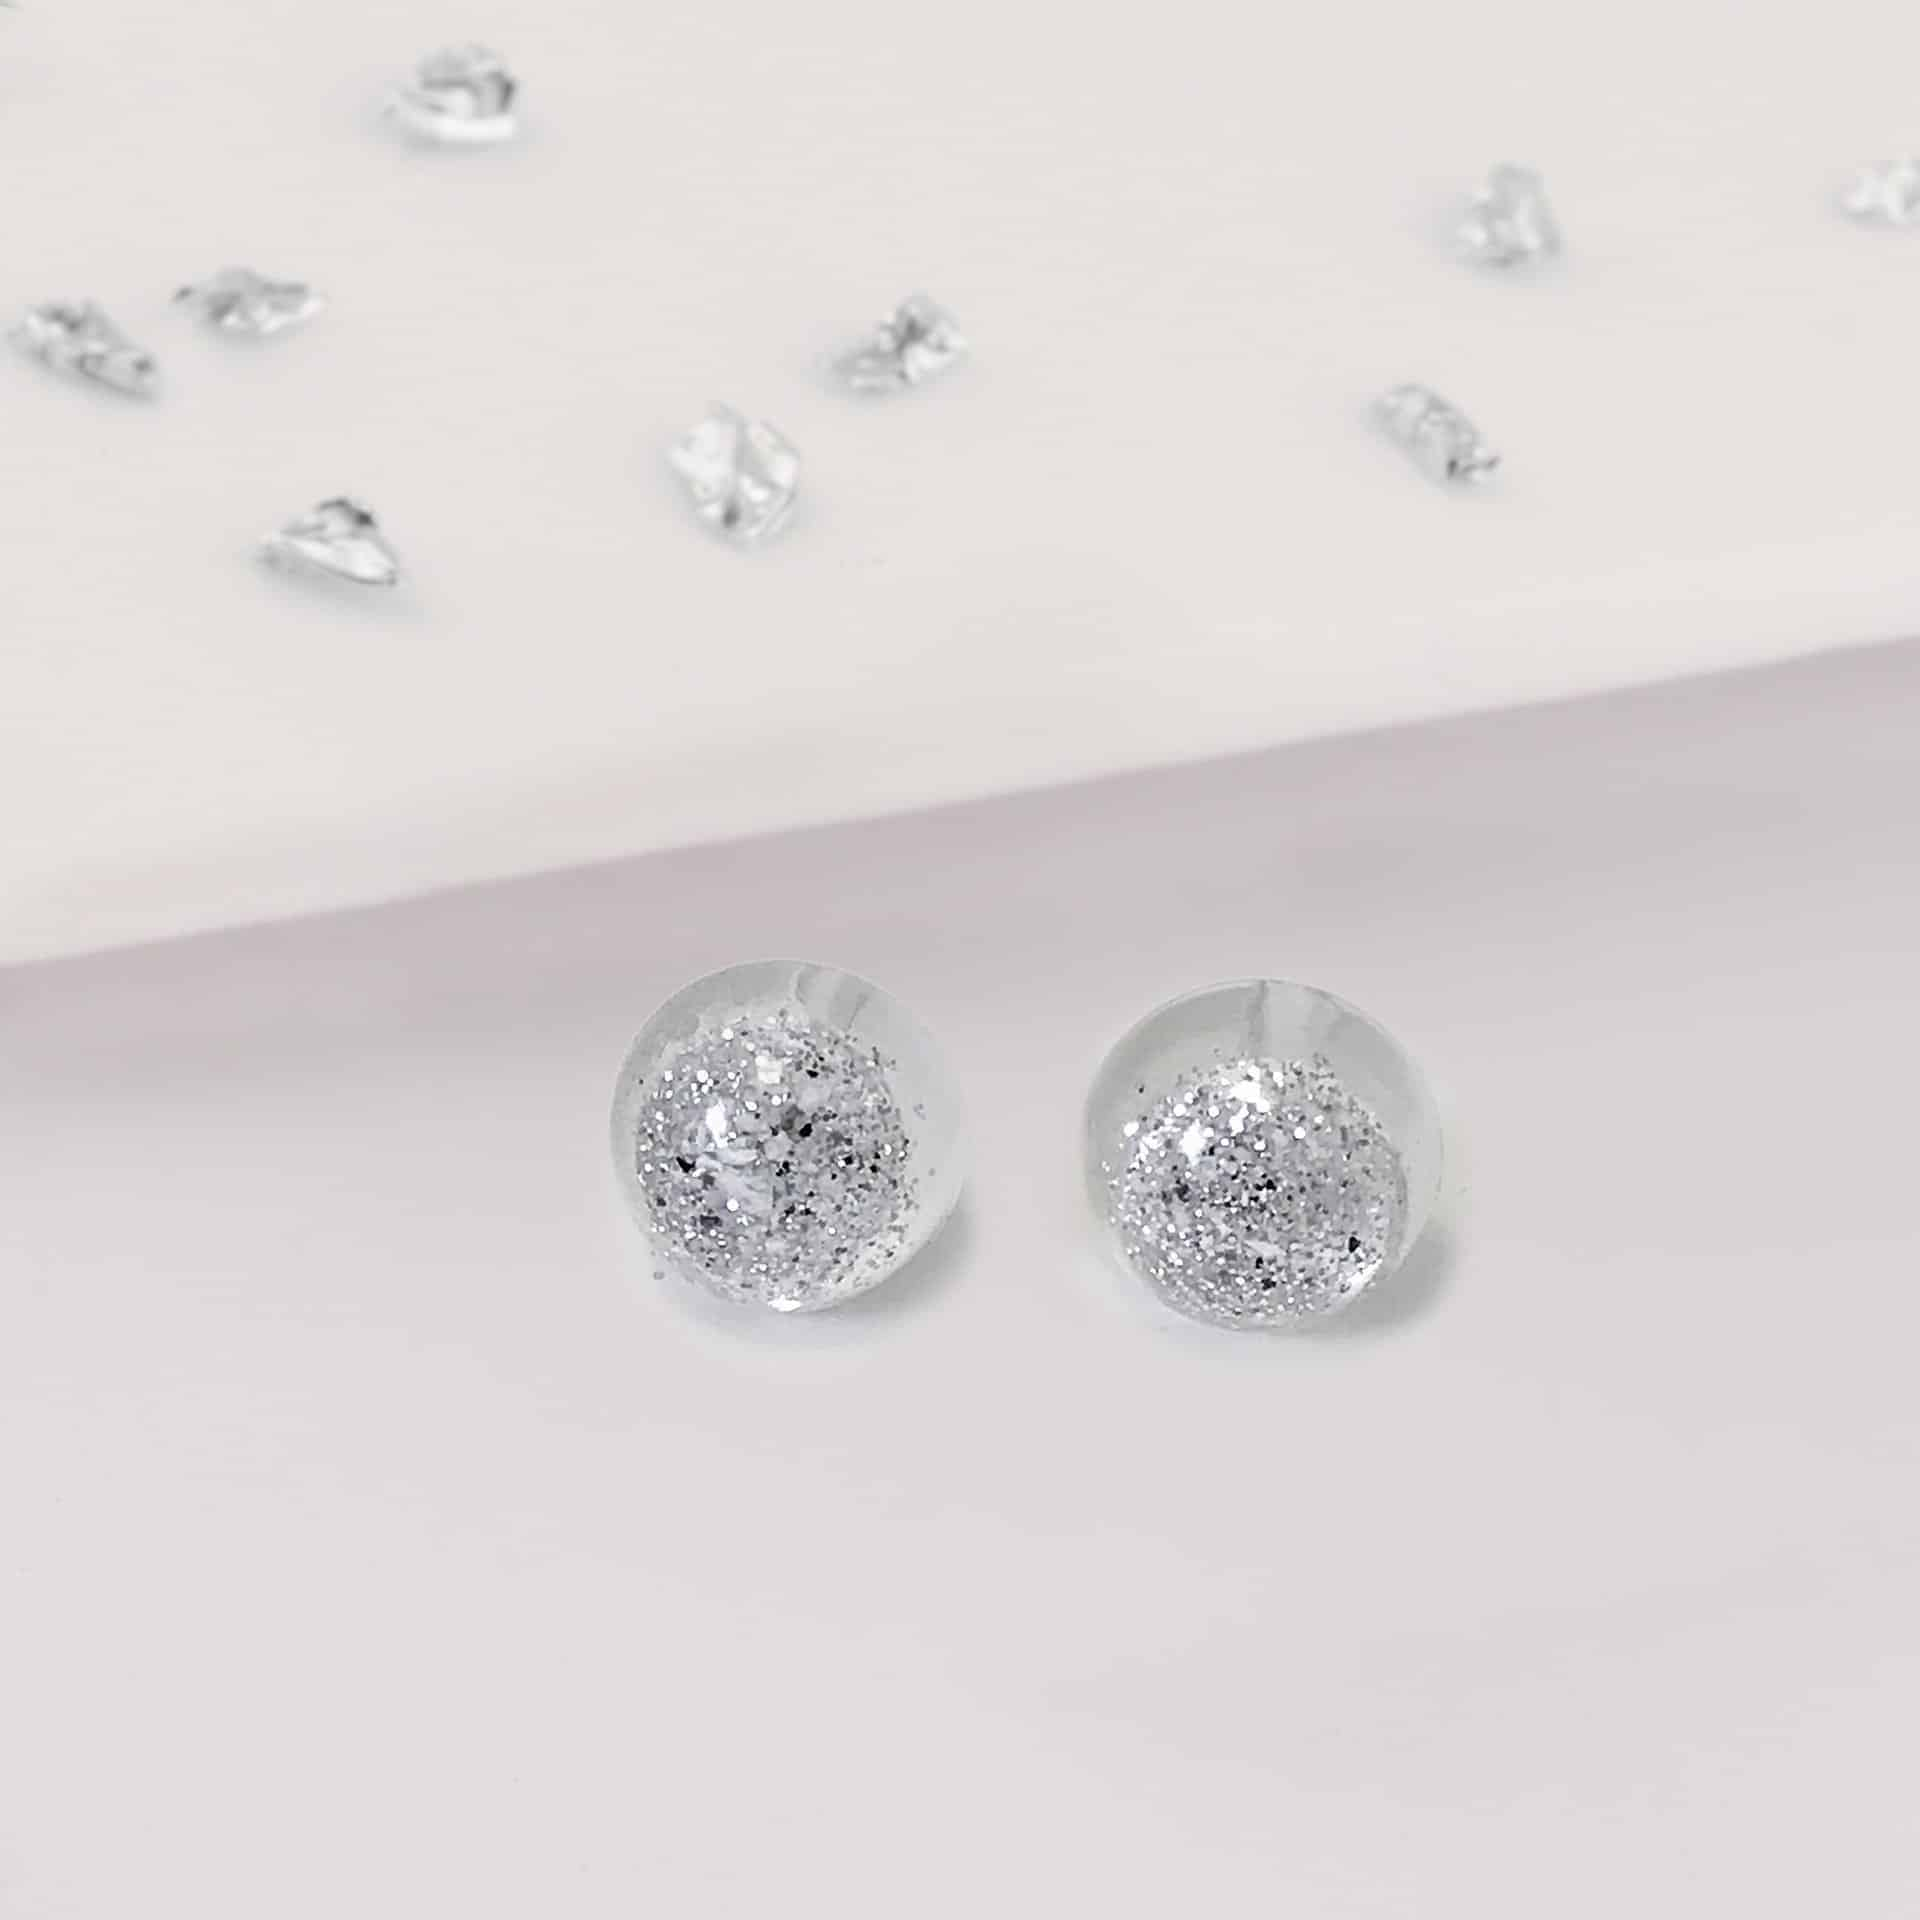 Silver Resin Round Stud Earrings